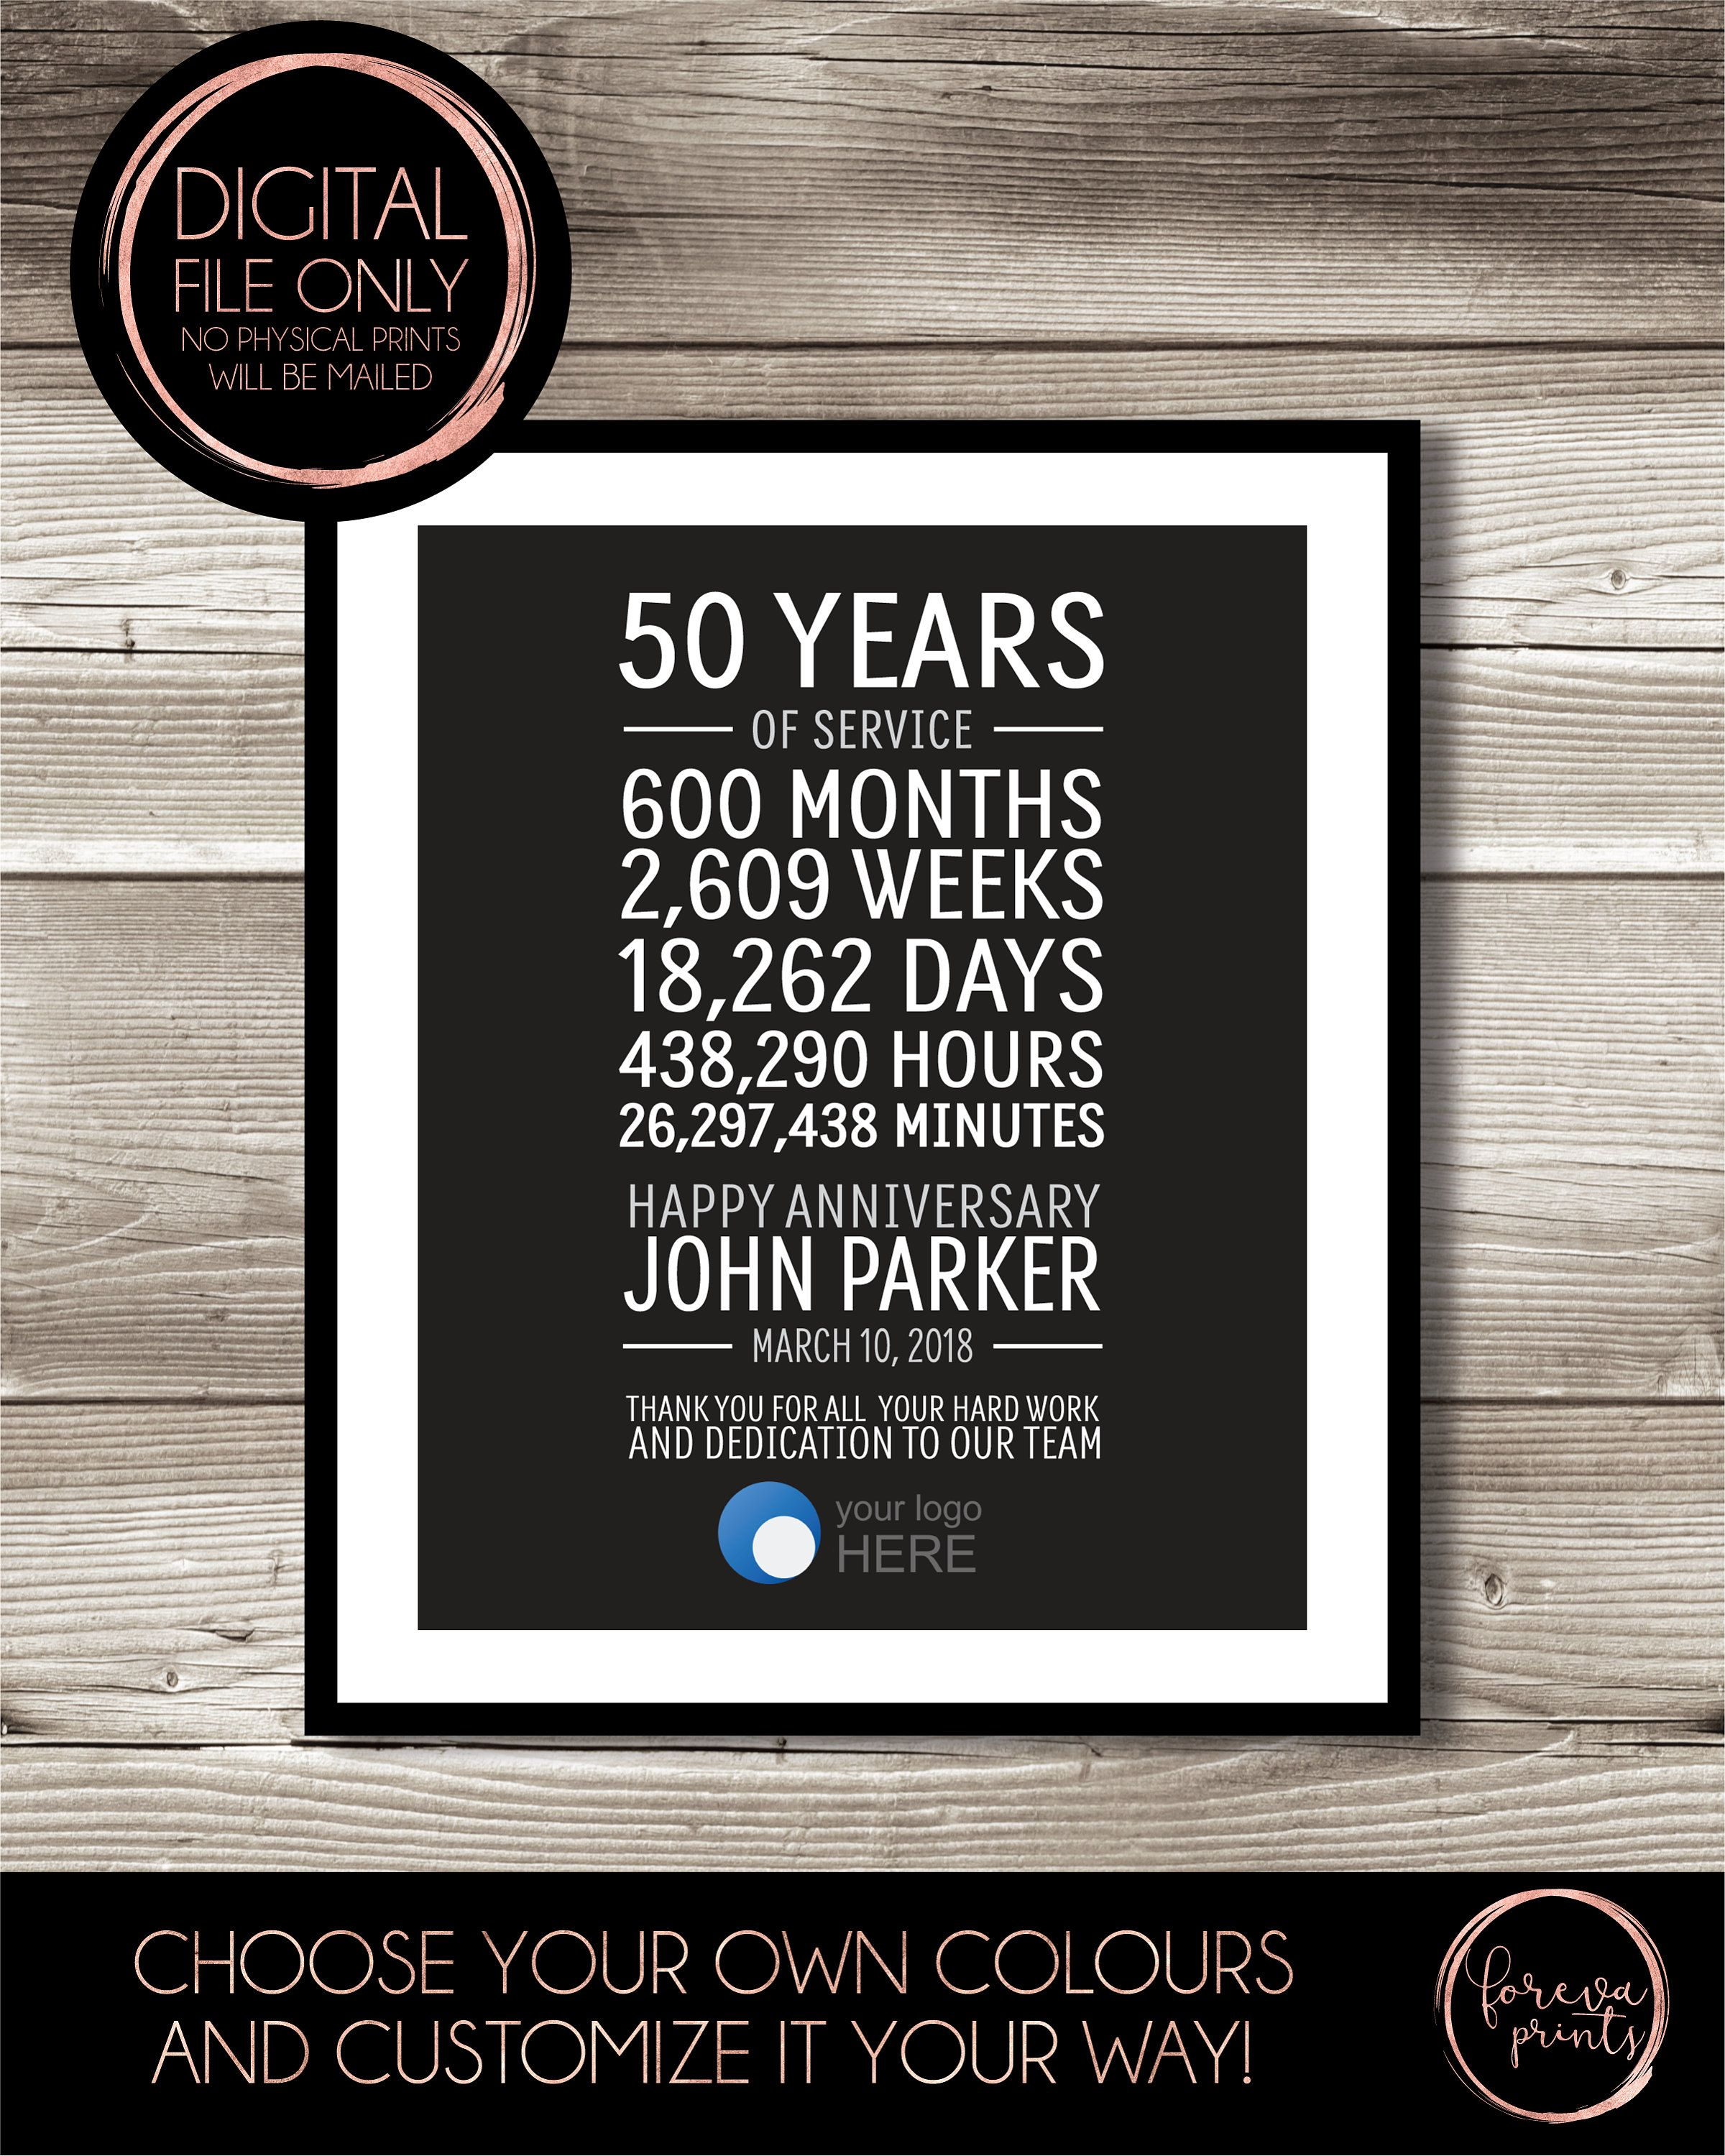 50 Year Work Anniversary Print Gift Idea Customizable Thank You Gift Years Of Service Retirement Employee Recognition Appreciation Work Anniversary Work Anniversary Gifts 25 Year Anniversary Gift